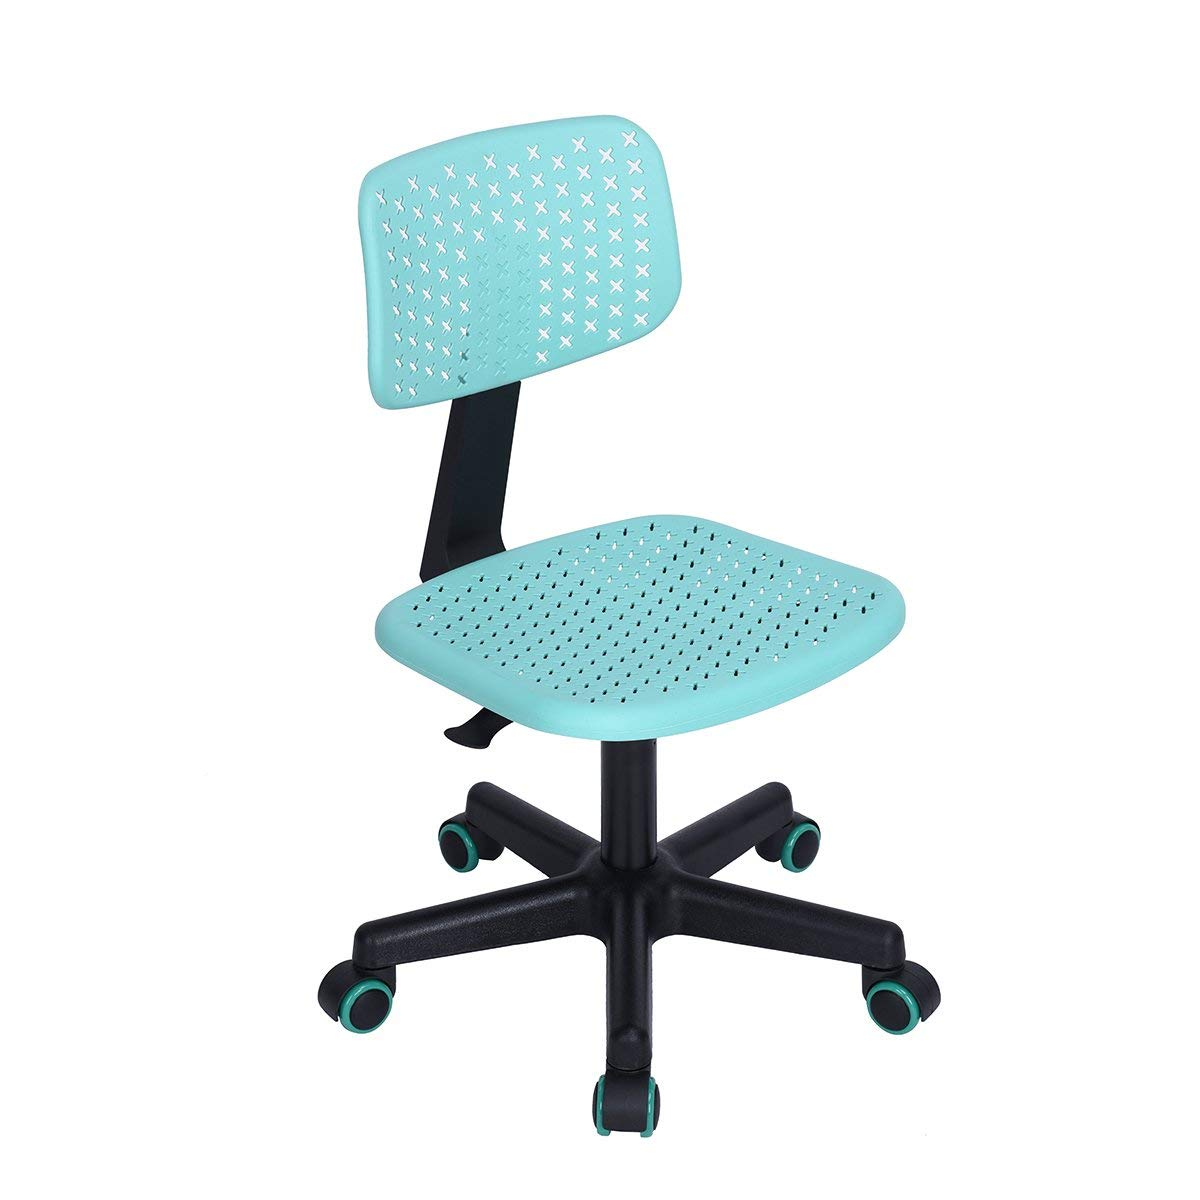 GreenForest Children Student Chair, Low-Back Armless Adjustable Swivel Ergonomic Home Office Student Computer Desk Chair, Hollow Star Turquoise (Renewed) by GreenForest